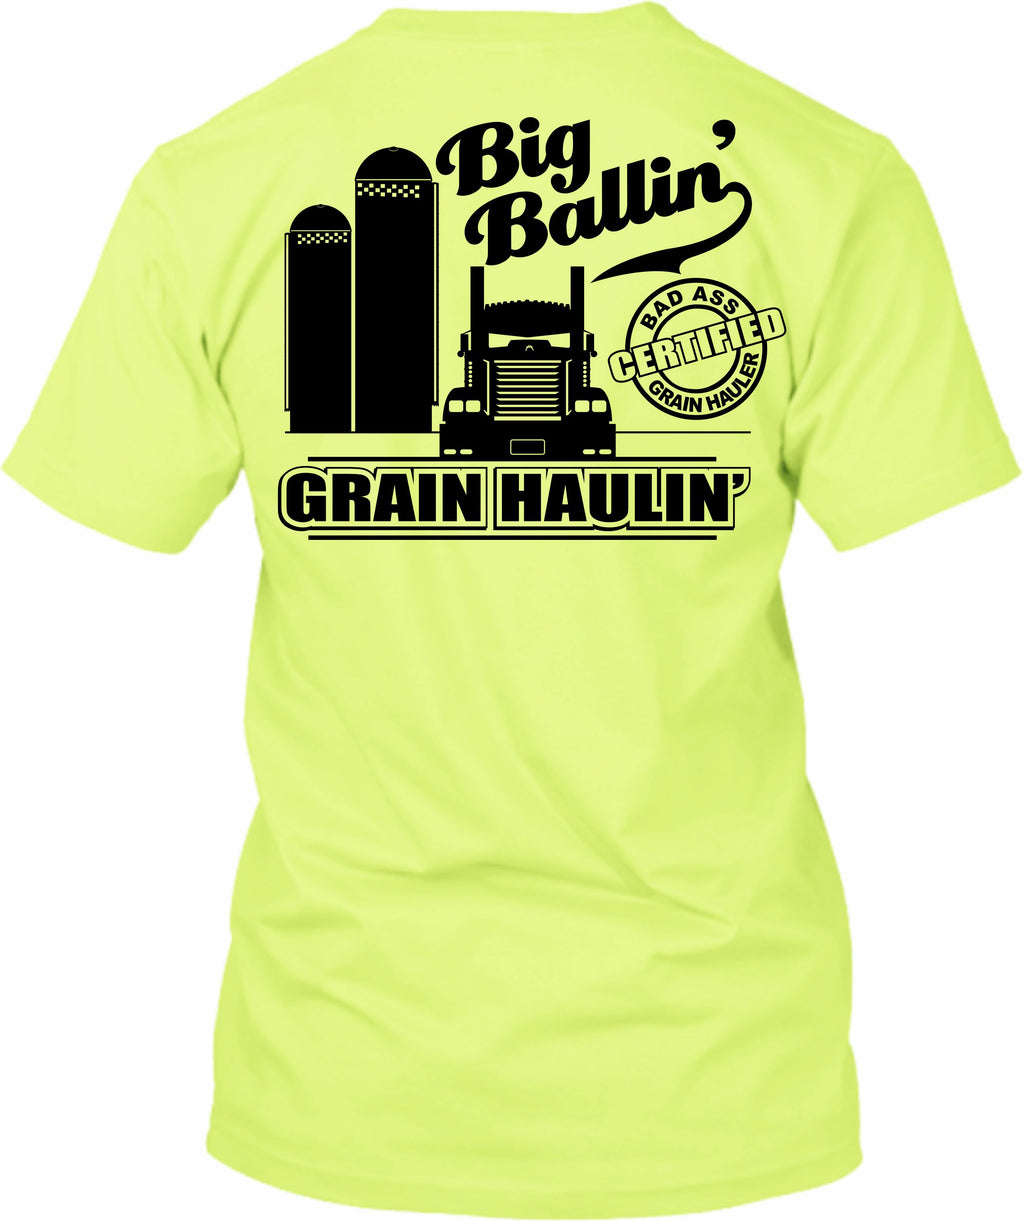 Big Ballin' Grain Haulin' Certified Bad Ass Grain Hauler KW